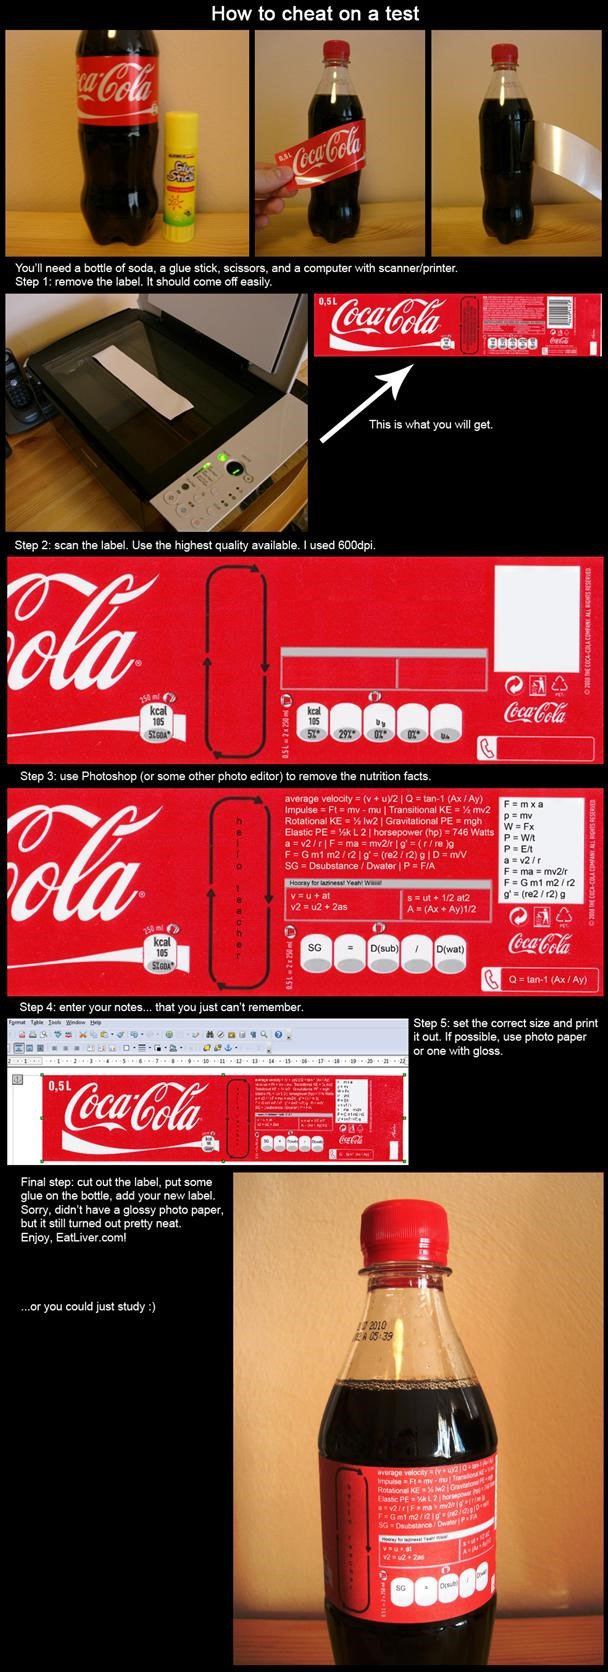 Cheat at Your Own Risk: Coca-Cola Crib Sheet